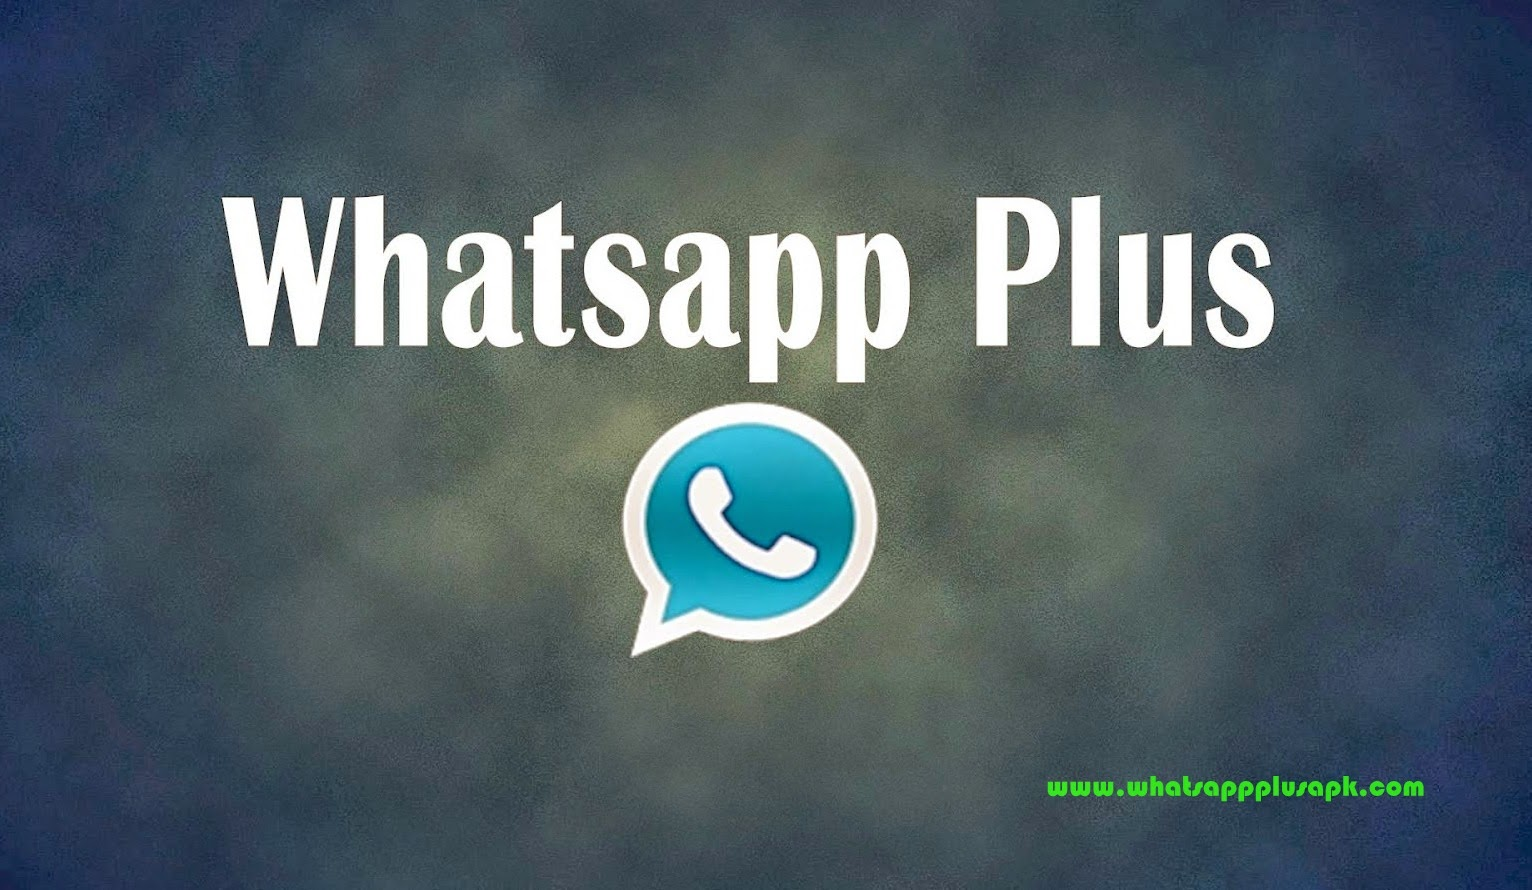 Whatsapp apk download for nokia x2-01